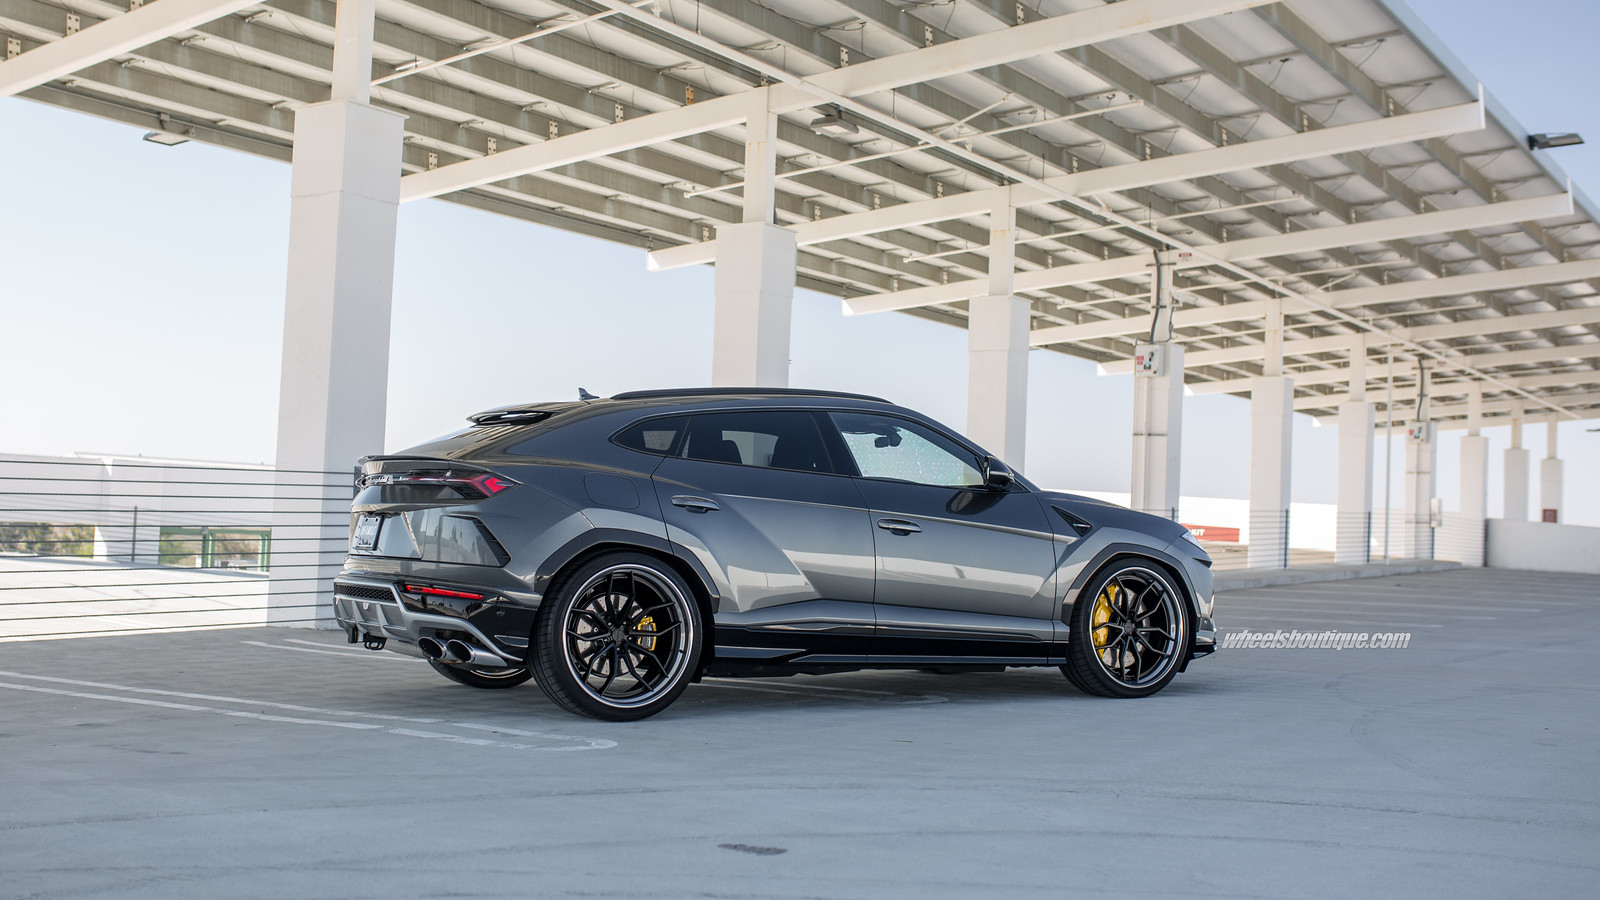 lamborghini urus \u0026 anrky wheels \u0026 wheels boutique \u2013 come right on in